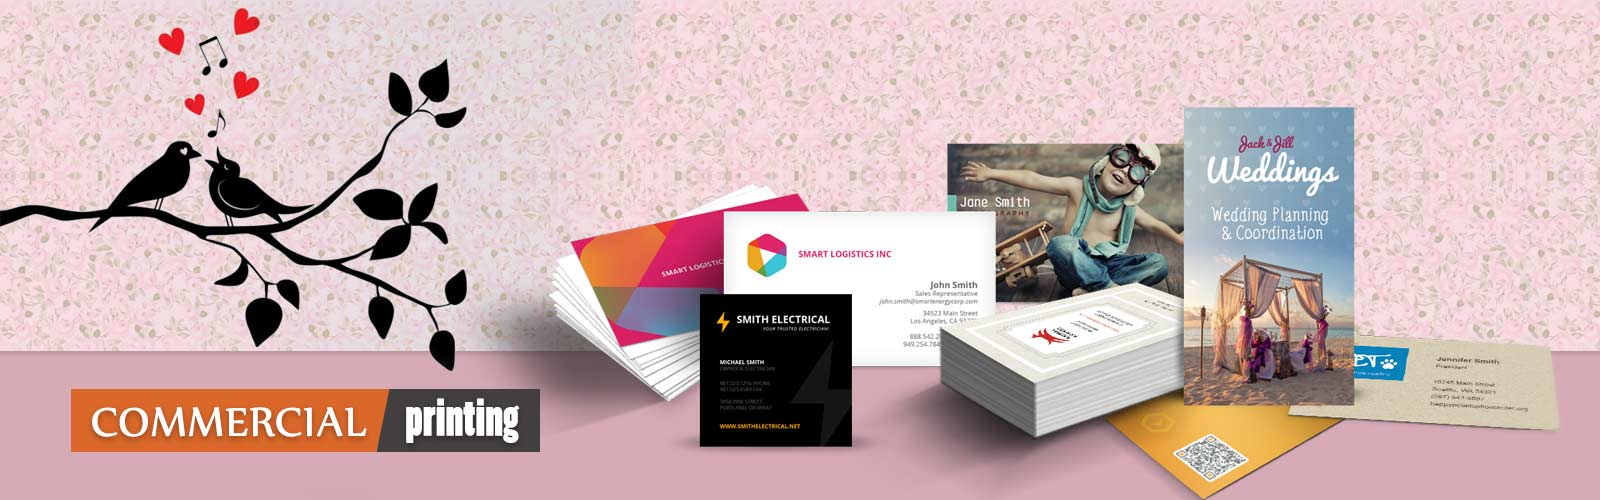 Commercial Printing Manufacturer in Delhi